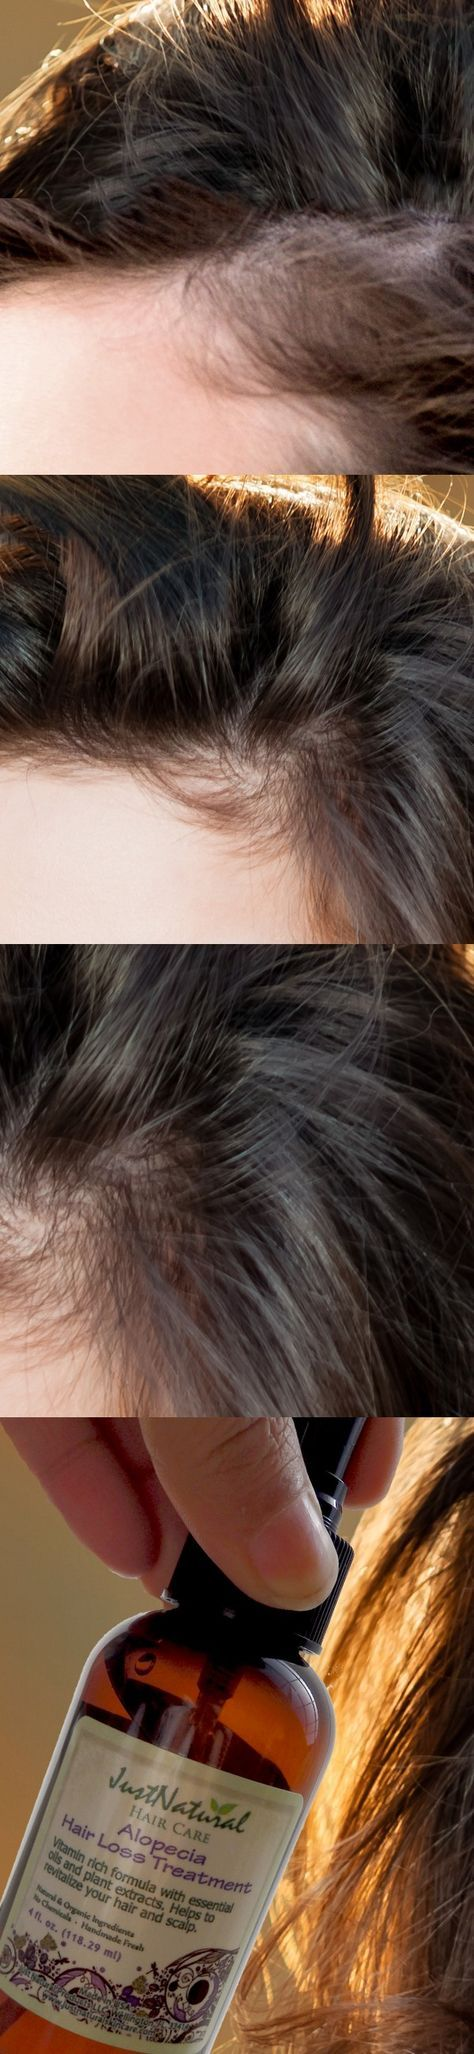 This alopecia treatment has transformed my hair completely. I used to have very thin brittle hair that would fall off just by rubbing my scalp. I was scared to wash it because I ended up with tons of hair in my hands. I can't believe how beautiful it looks now. The hair loss has reduced enormously and my when I grap my hand around I feel like have so much more hair now. I am so happy with this product!